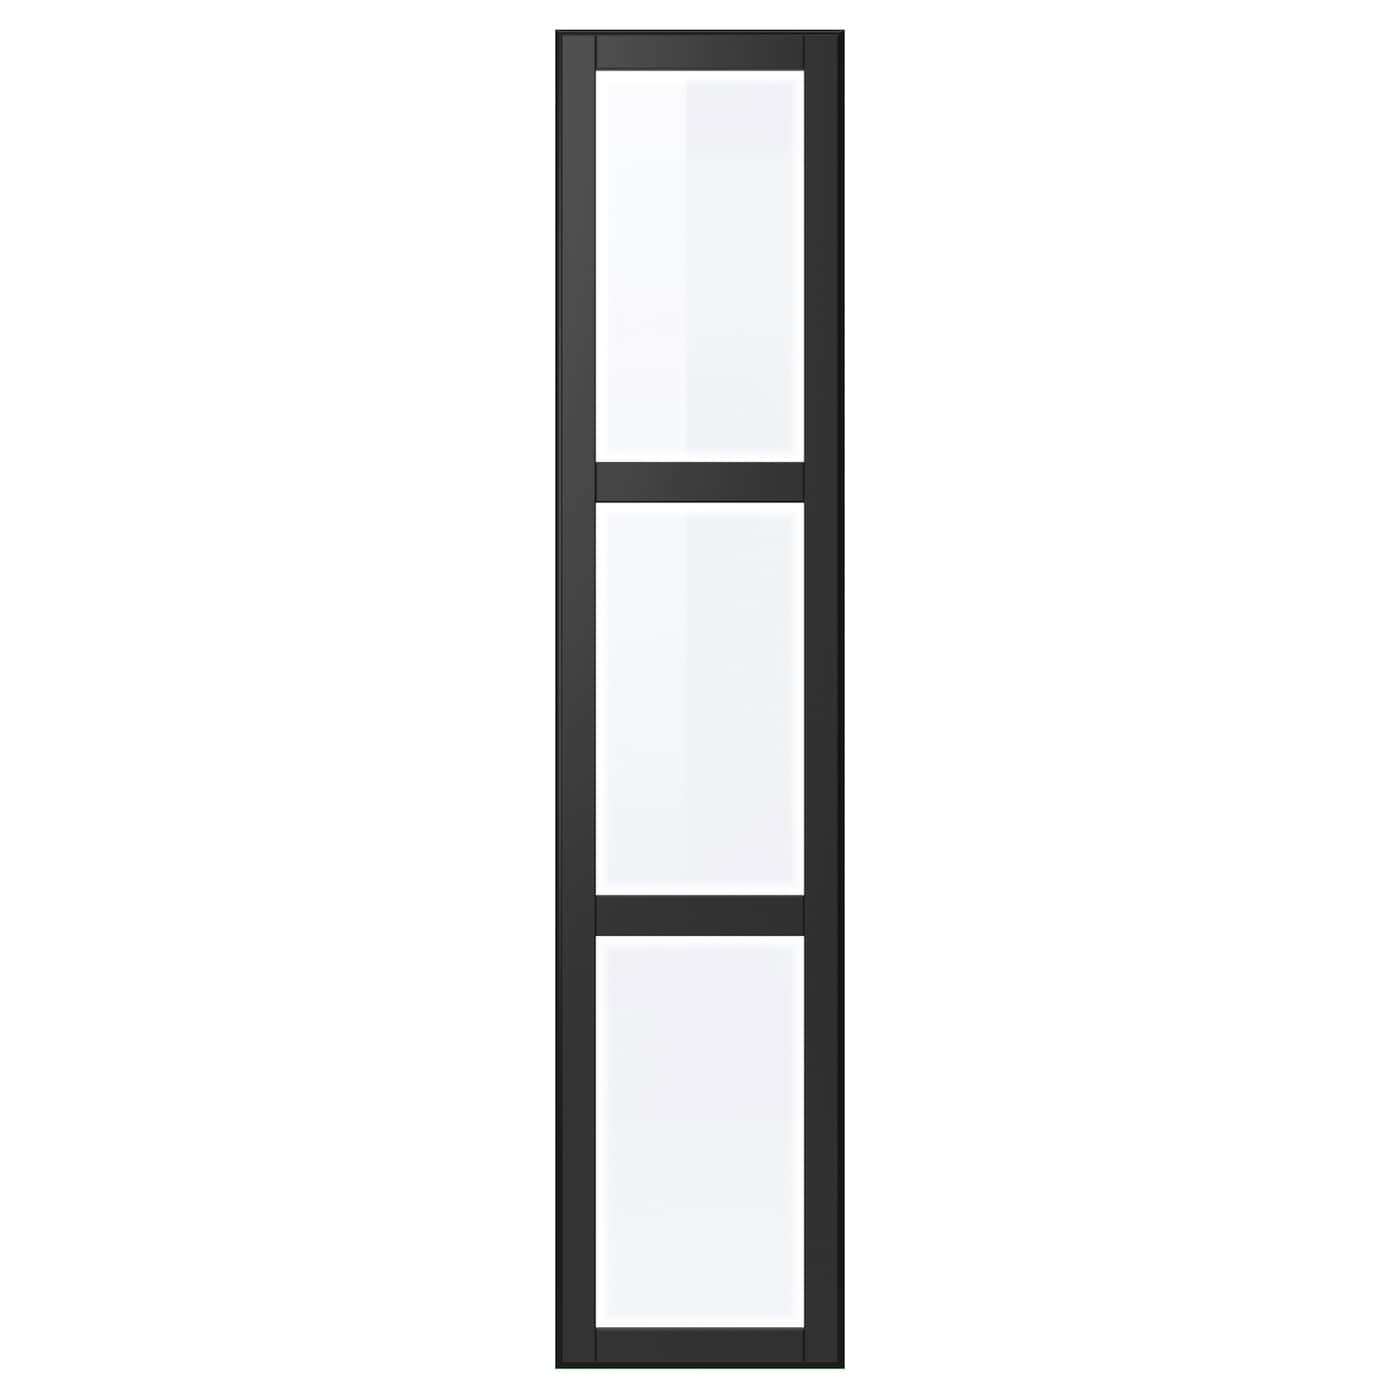 IKEA UNDREDAL door with hinges 10 year guarantee. Read about the terms in the guarantee brochure.